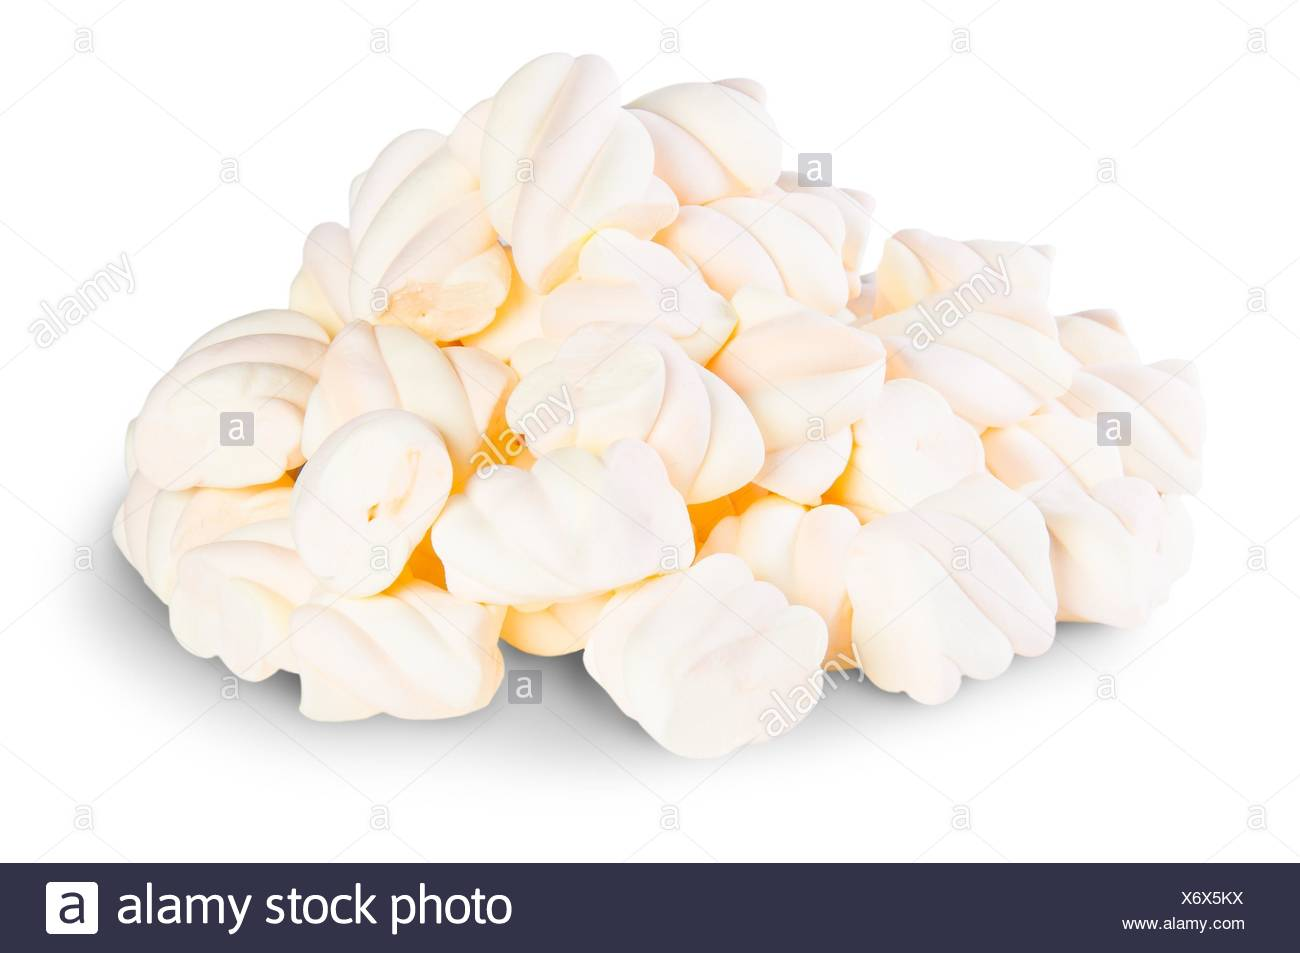 Pile The Spiral Marshmallows Isolated On White Background. Stock Photo